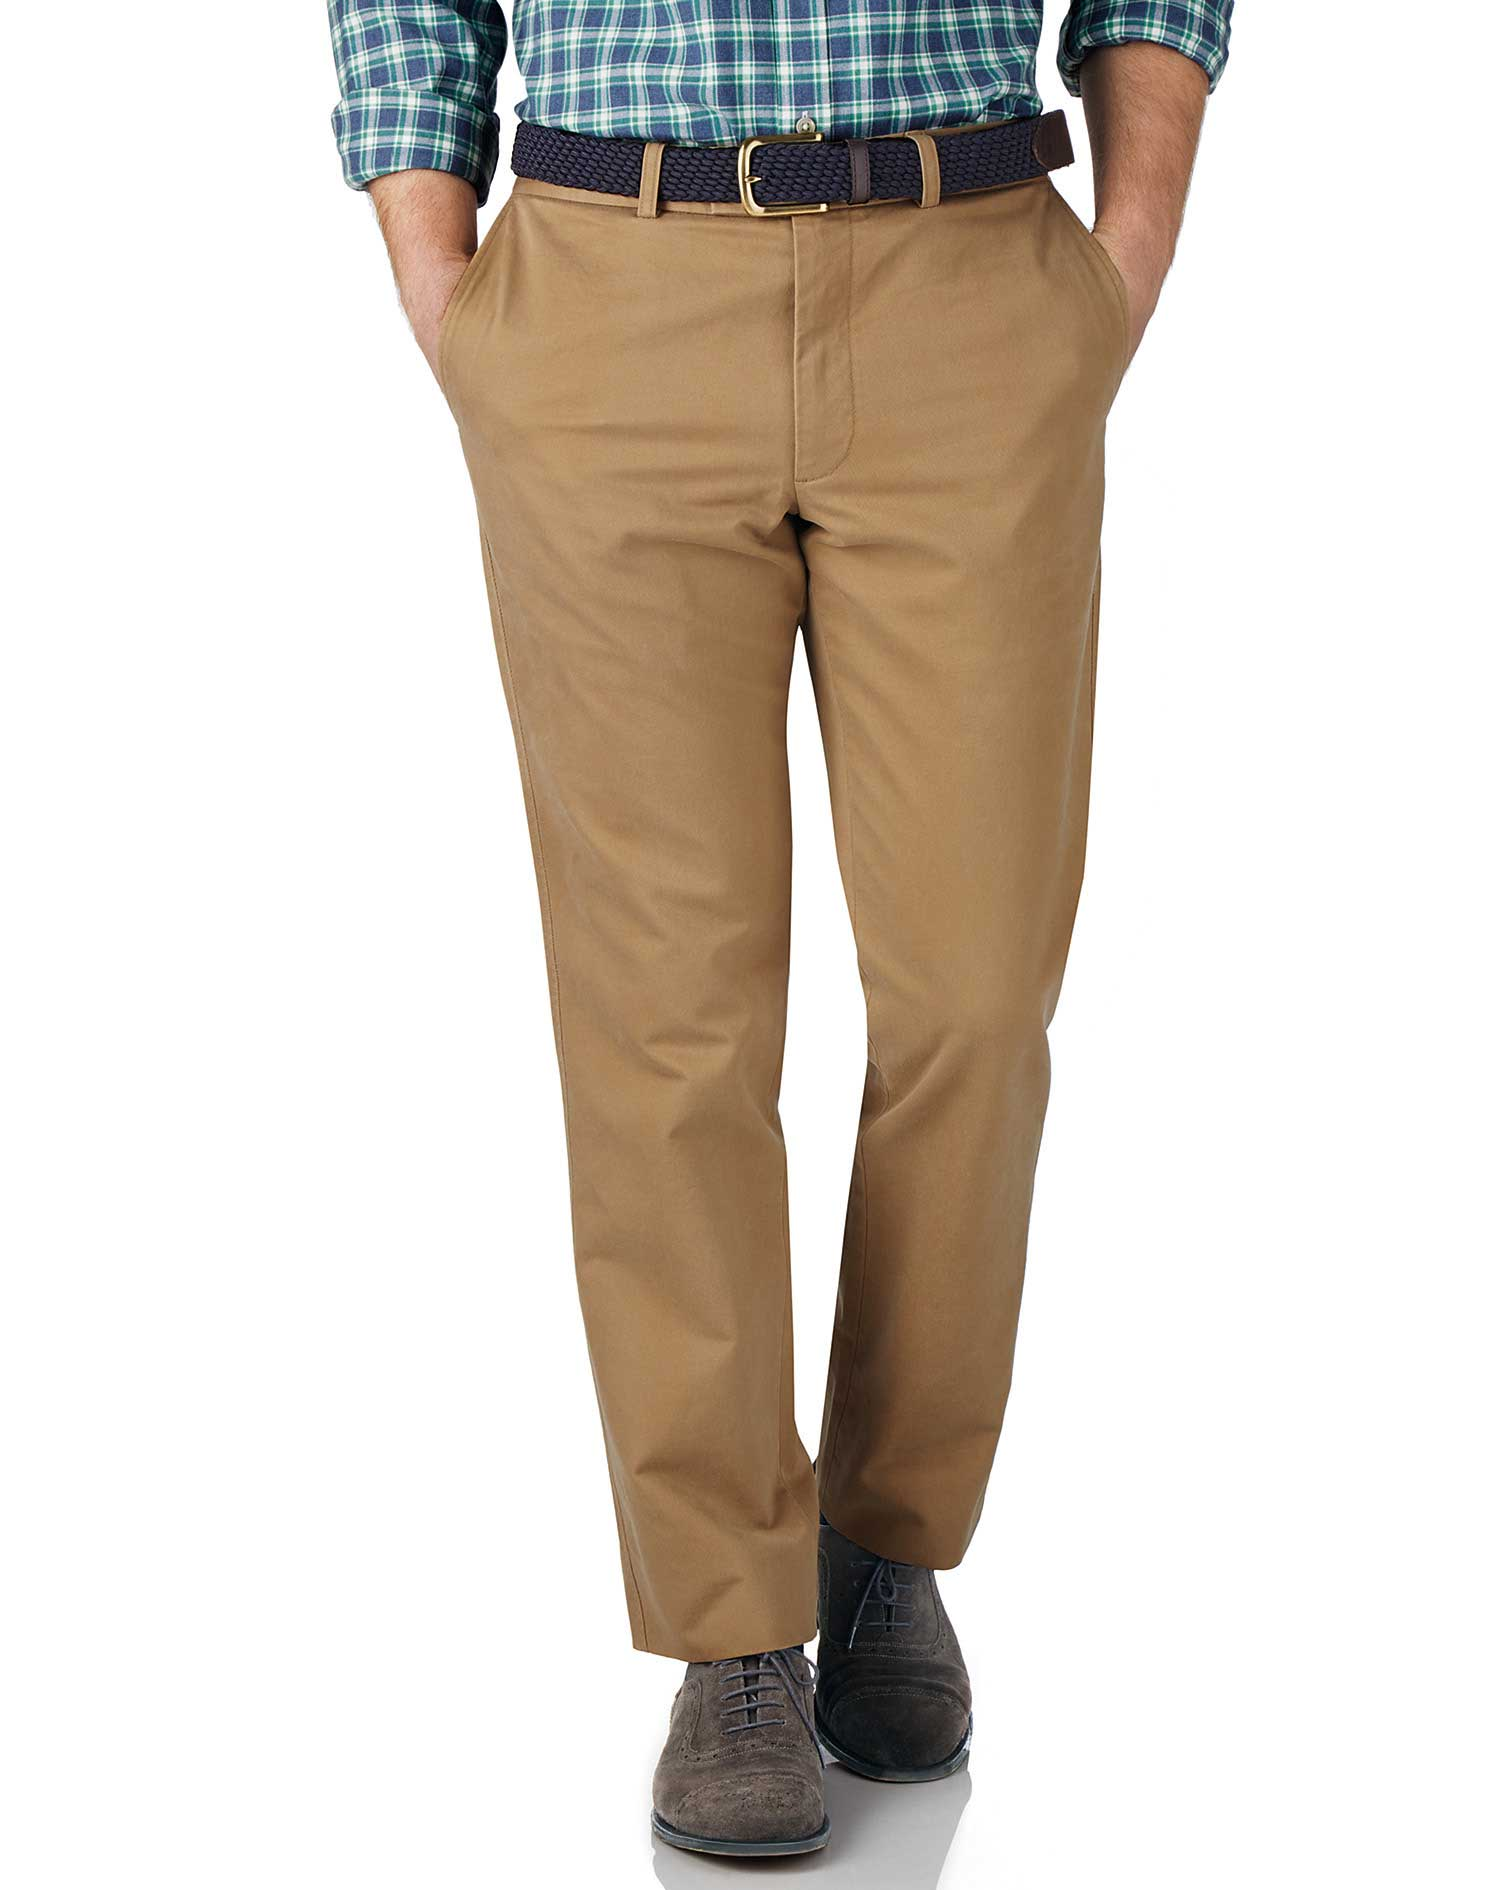 Tan Slim Fit Flat Front Weekend Cotton Chino Trousers Size W34 L38 by Charles Tyrwhitt